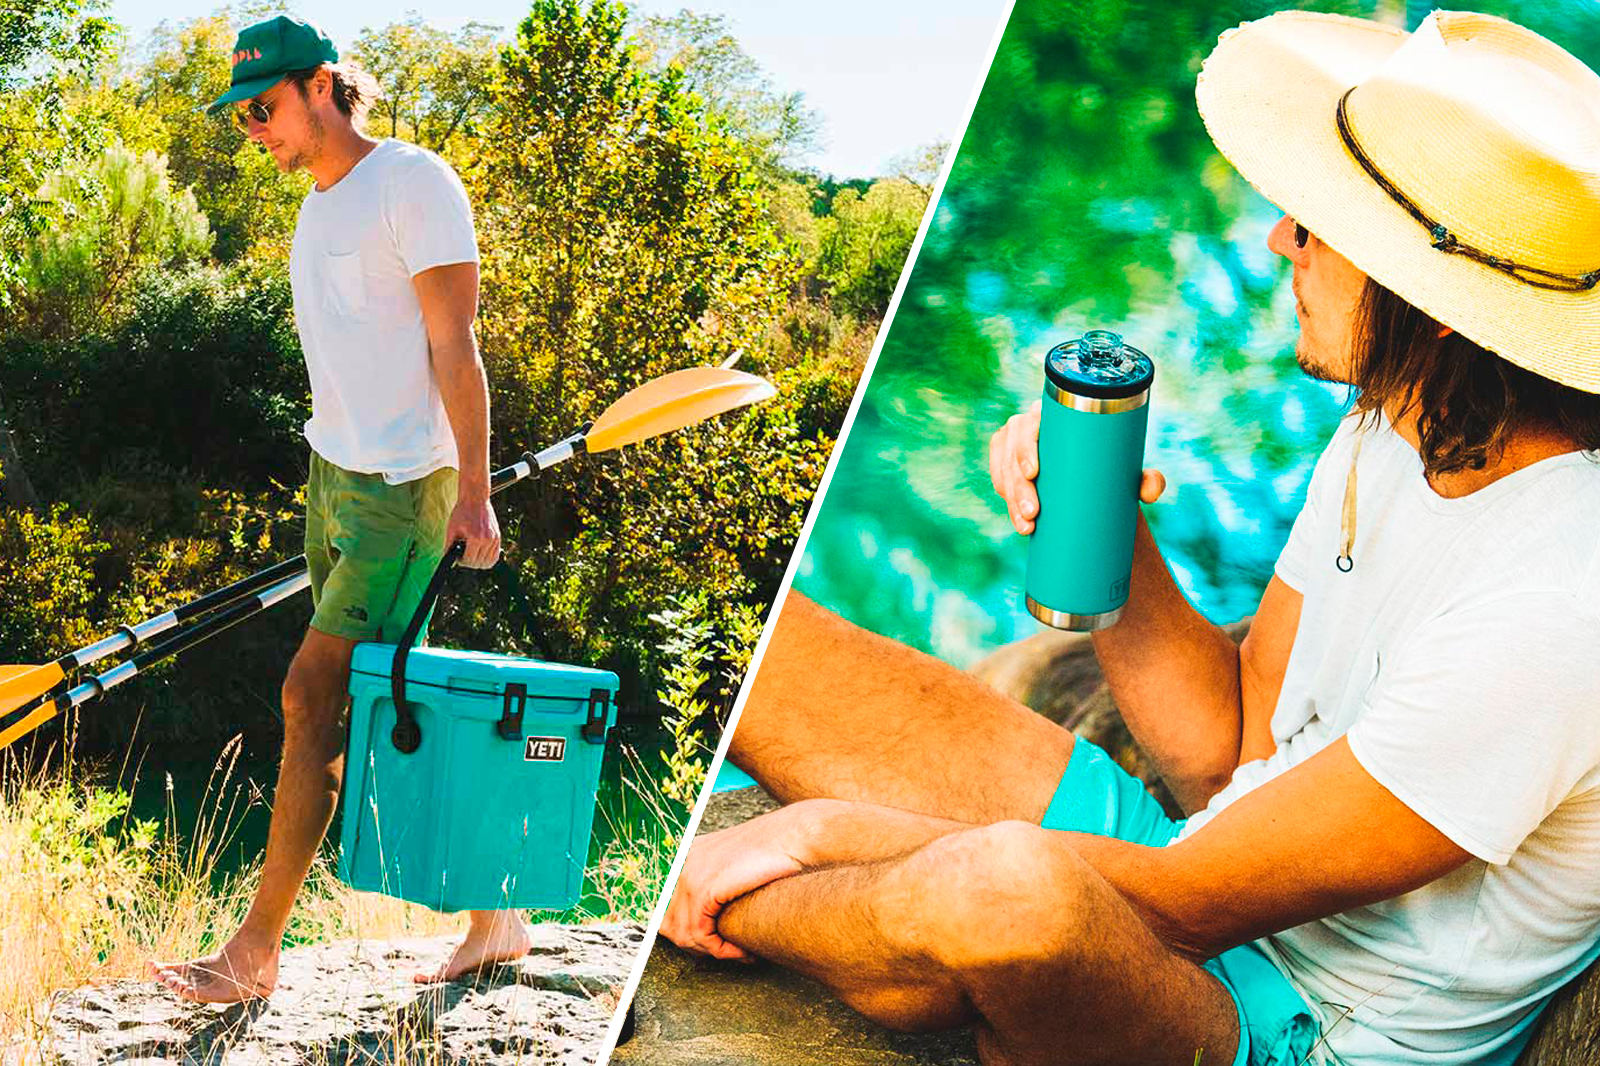 Yeti cooler and water bottle in aquifer blue